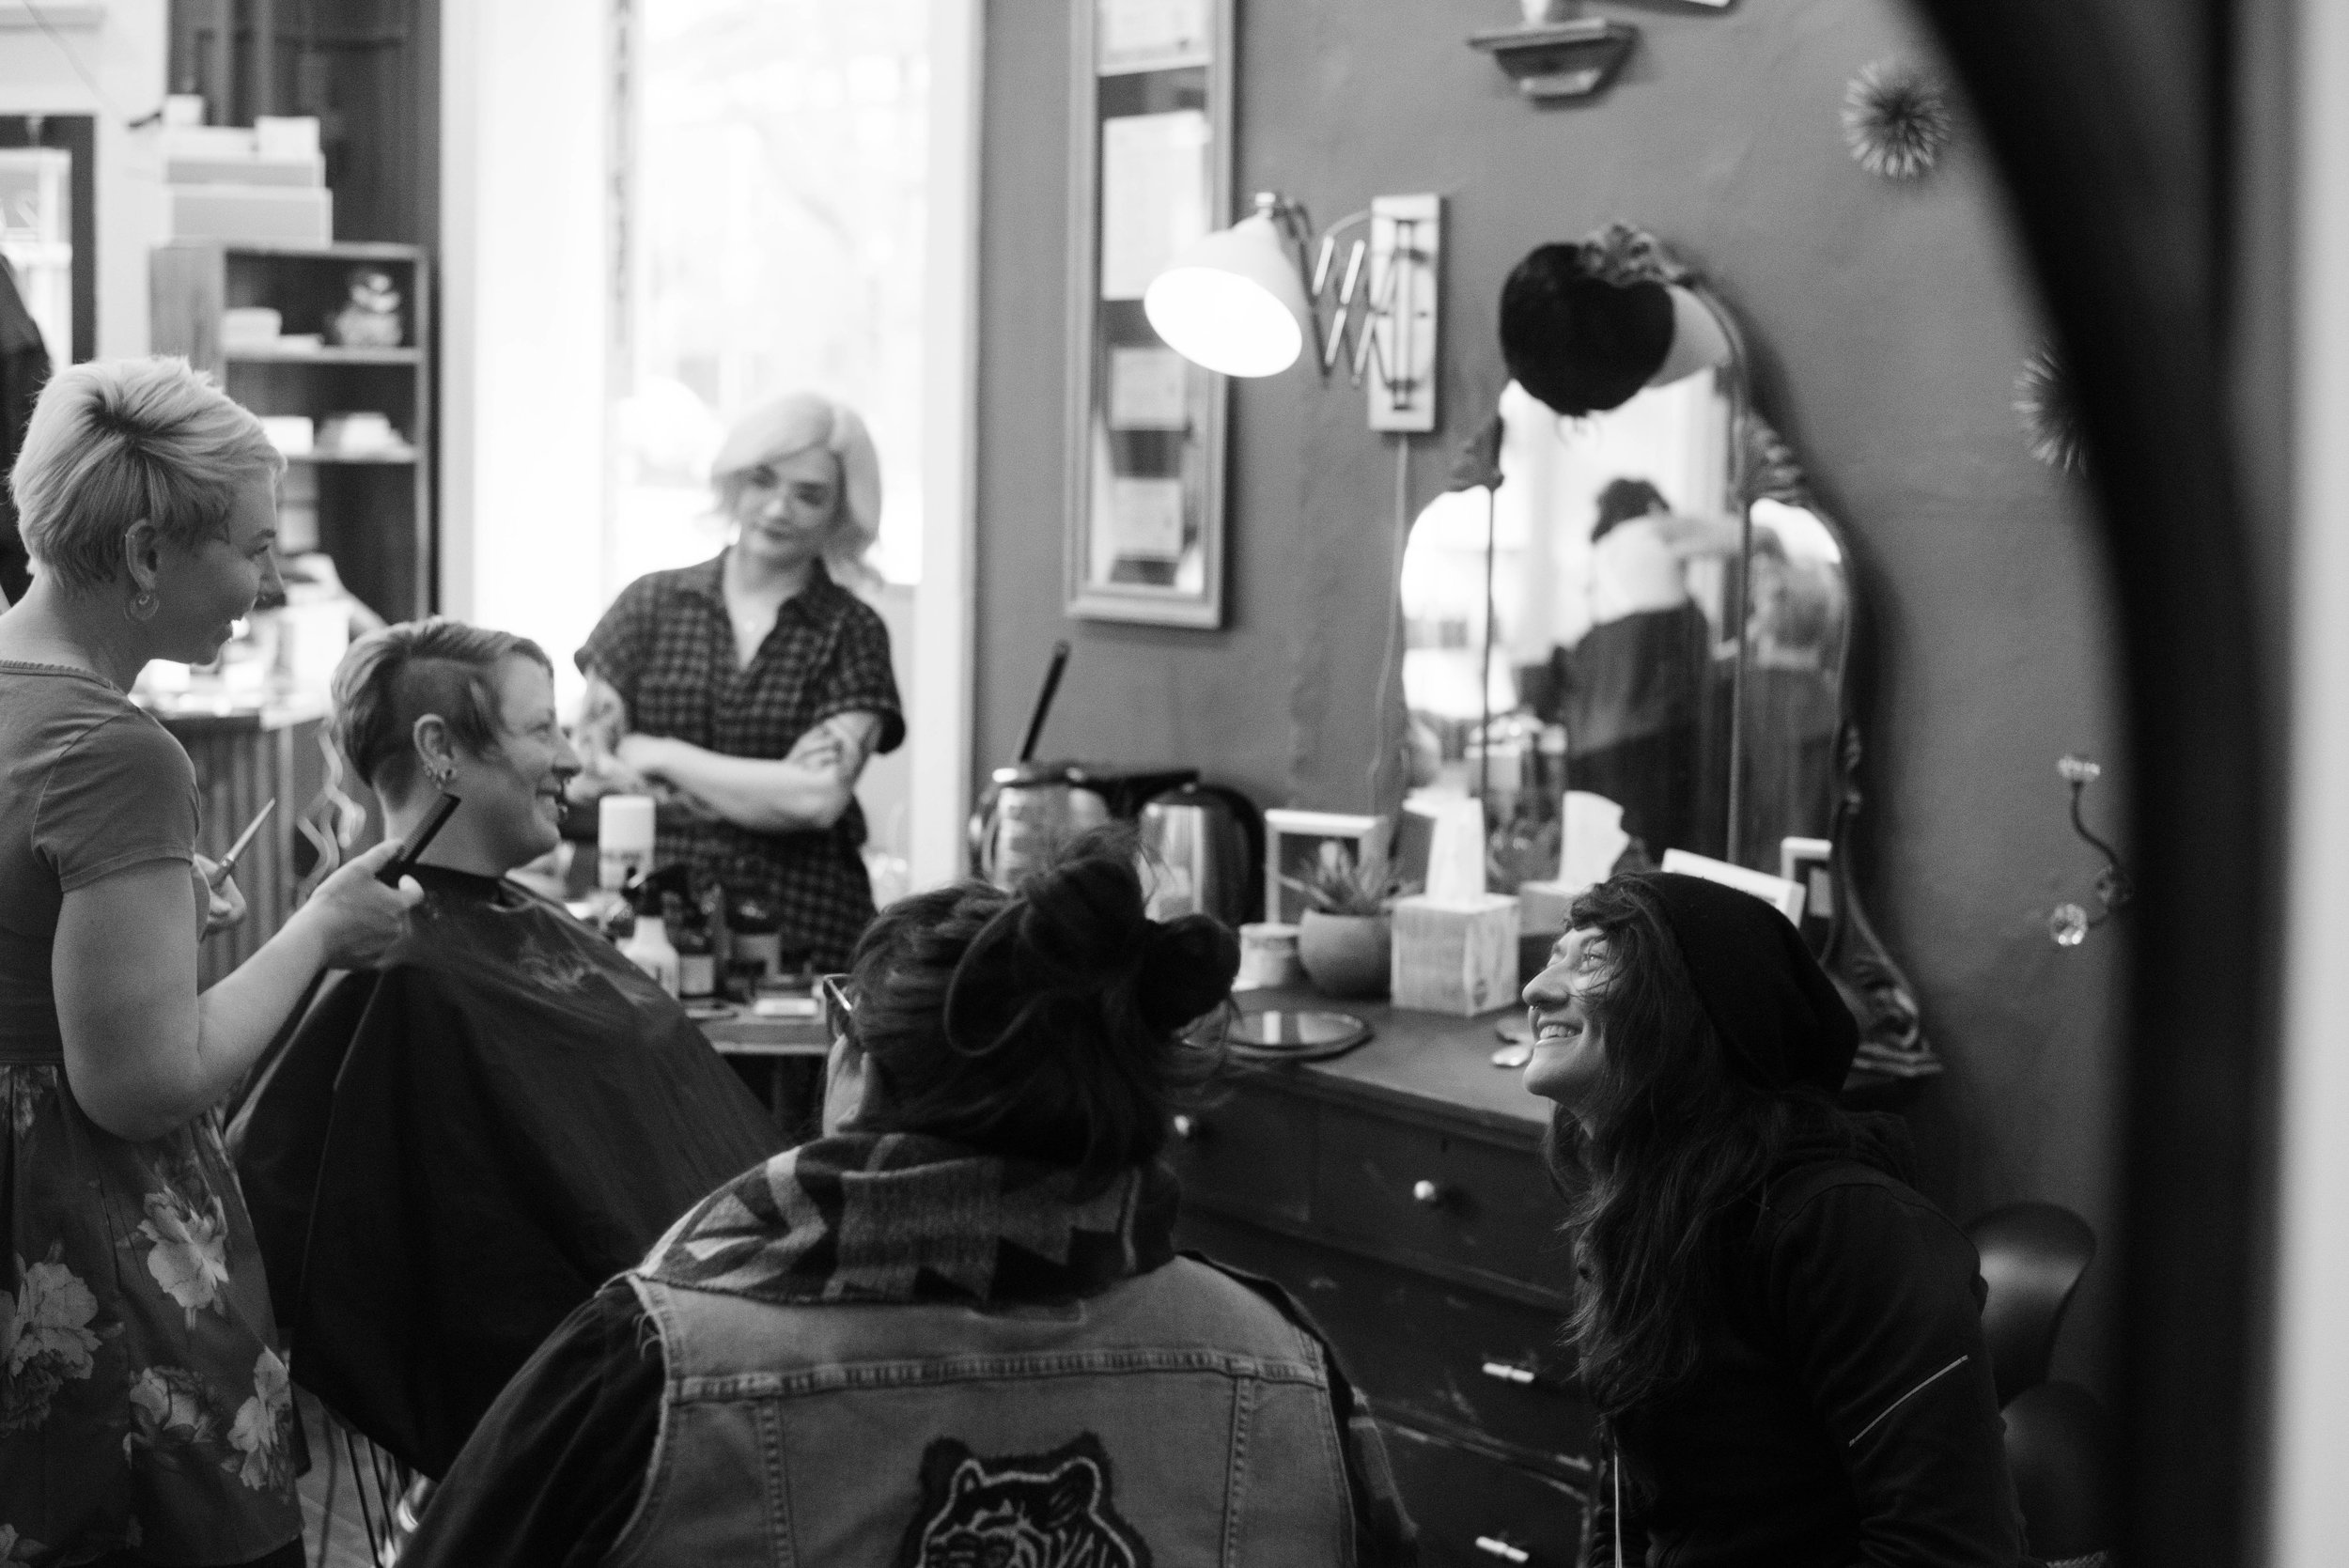 OUR ATWOOD beauty shop is for everyone! - WE OFFER EXTENDED SERVICES INCLUDING HAIR COLOR, BRIDAL STYLING, MAKE-UP, NAILS, AND FACIALS.Plan ahead and book for all your beauty needs.